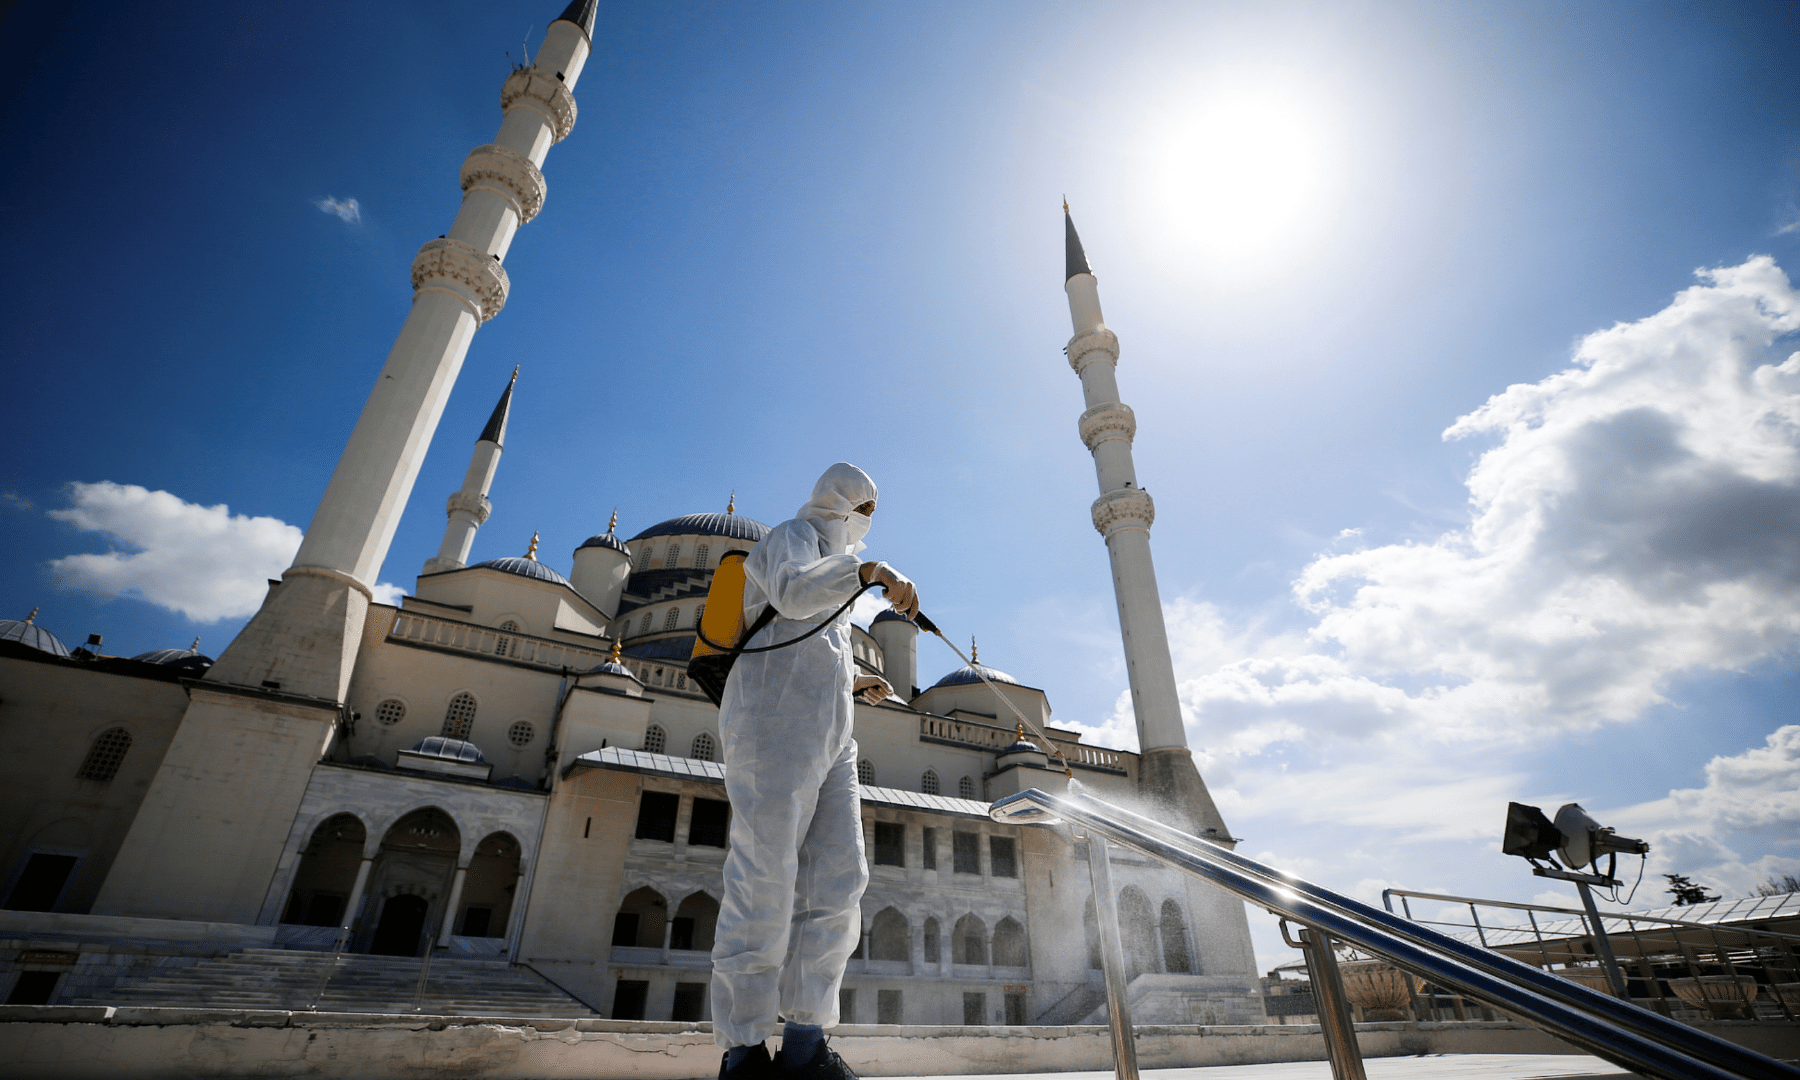 A municipality worker in a protective suit disinfects the Kocatepe Mosque to prevent the spread of the coronavirus, during Ramazan in Ankara, Turkey. — Reuters